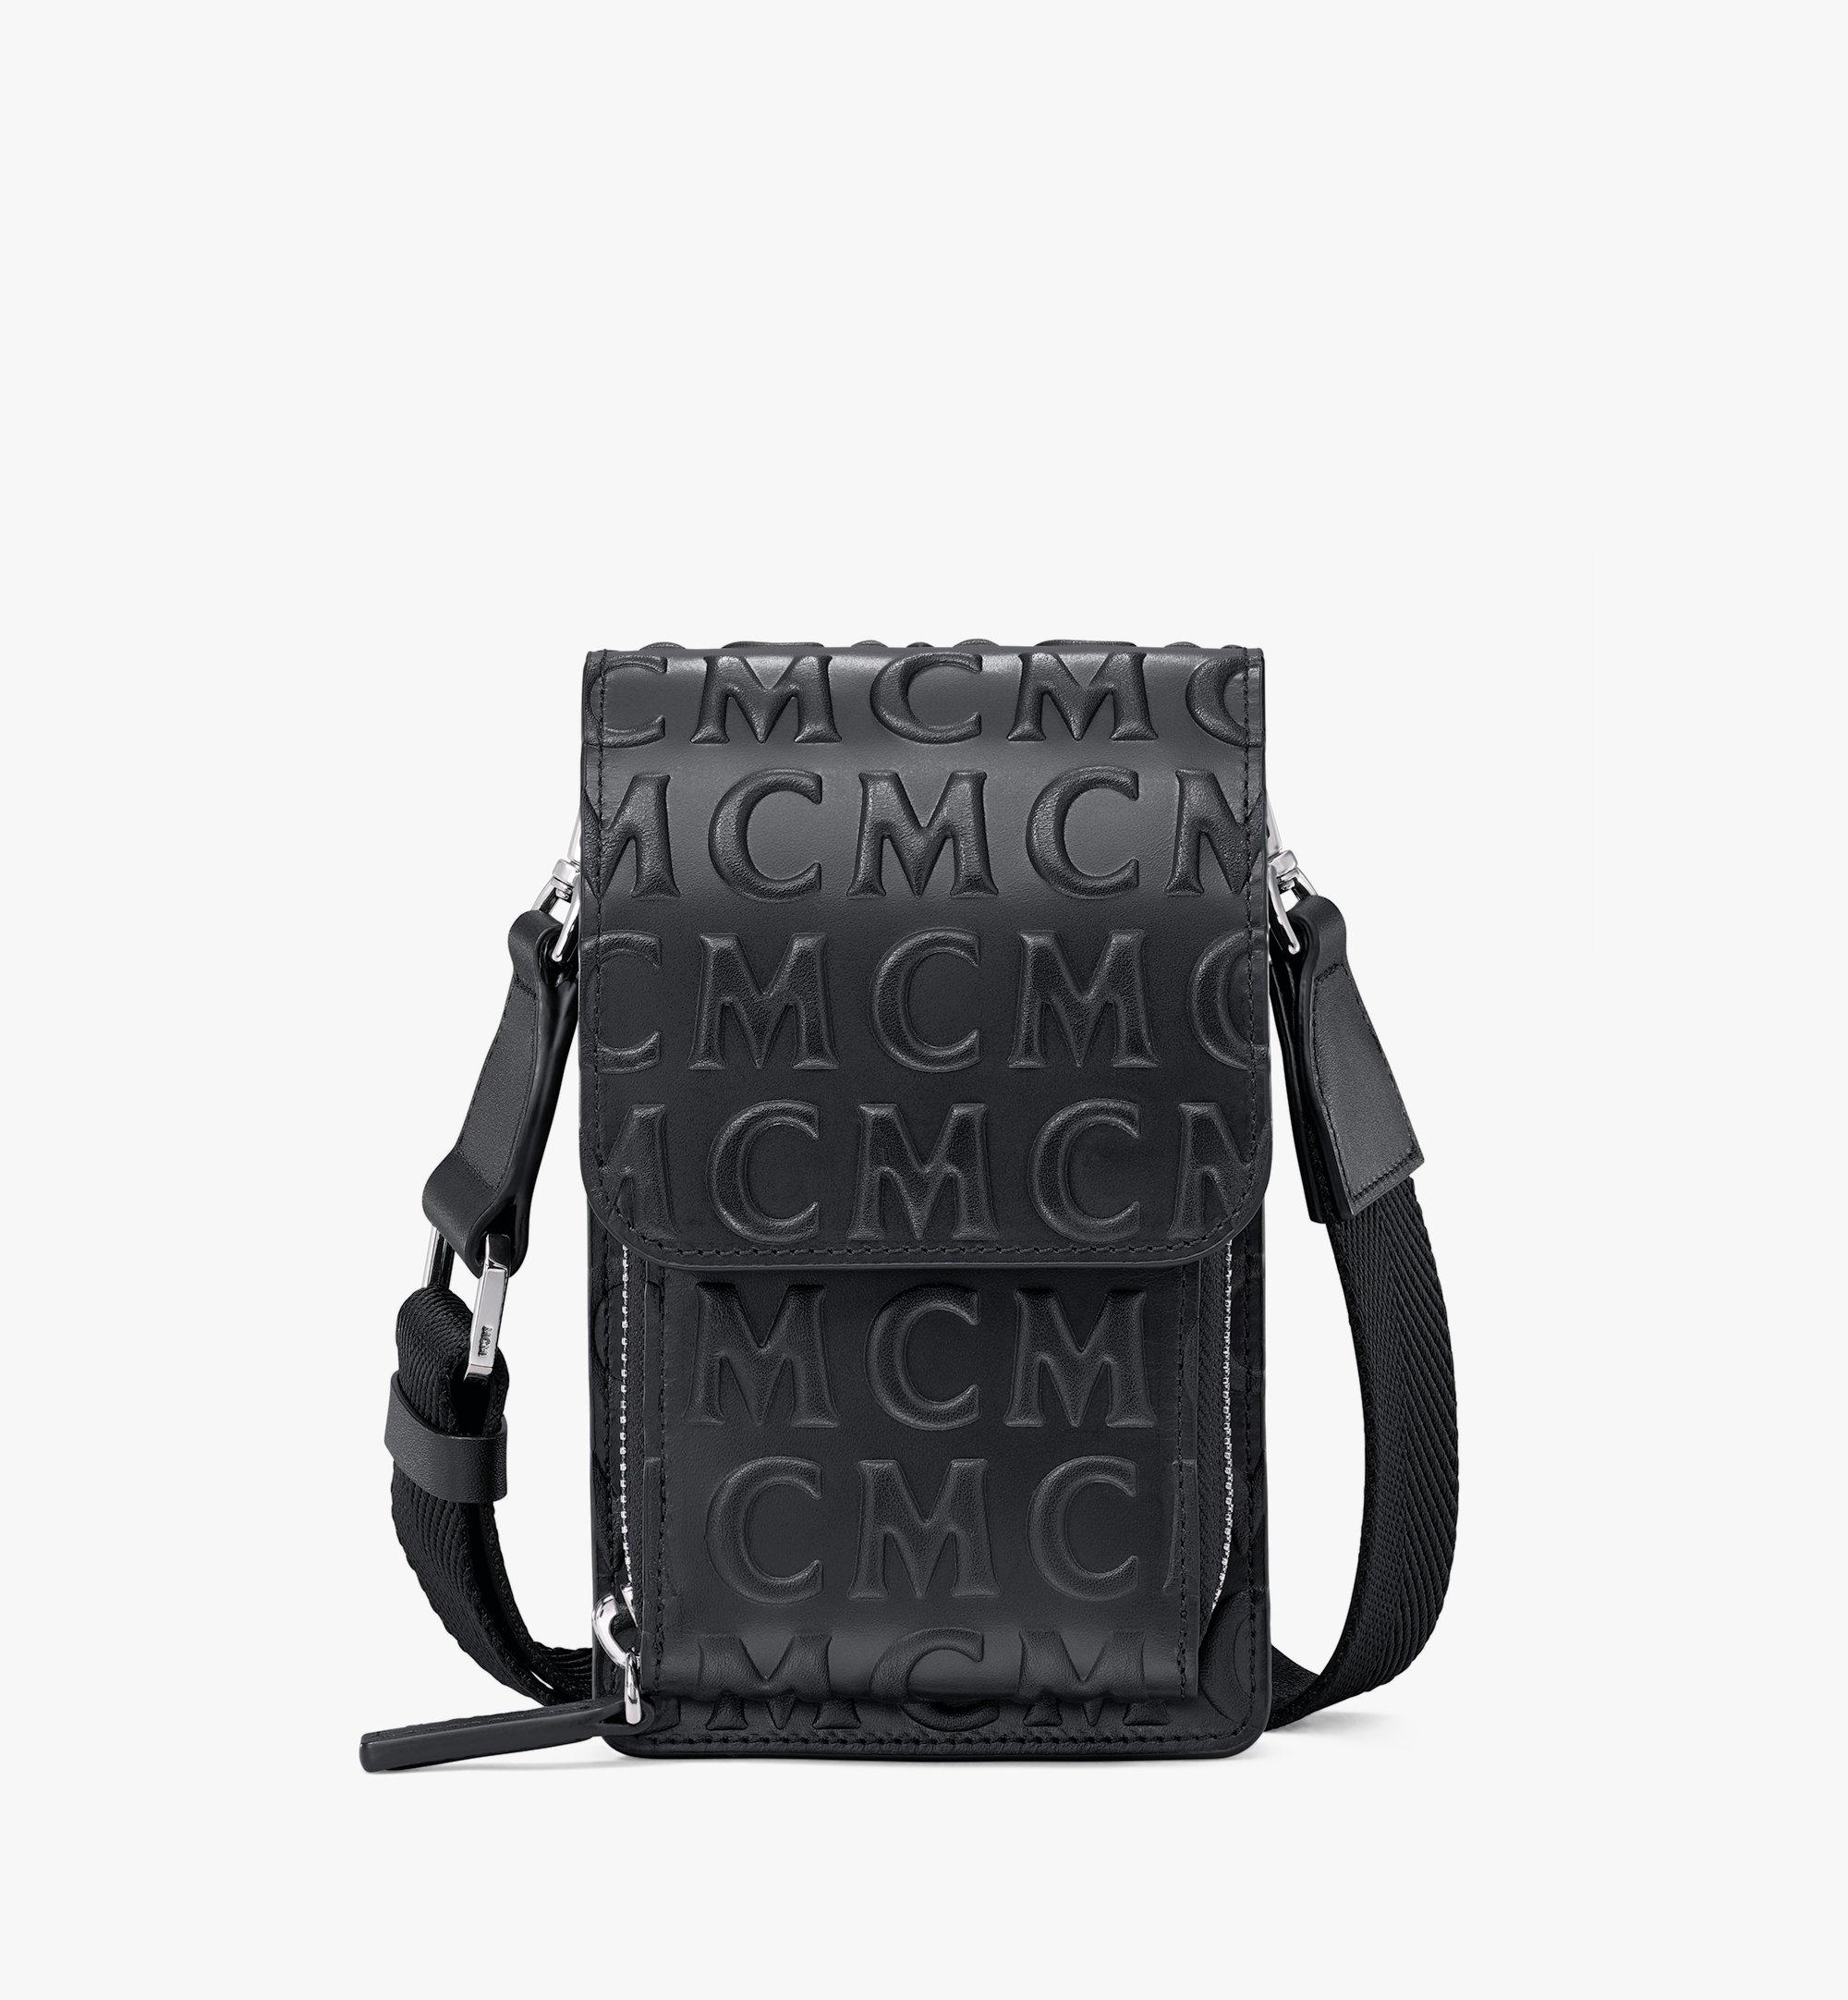 MCM Crossbody Phone Case in MCM Monogram Leather Black MXEAAMD01BK001 Alternate View 1